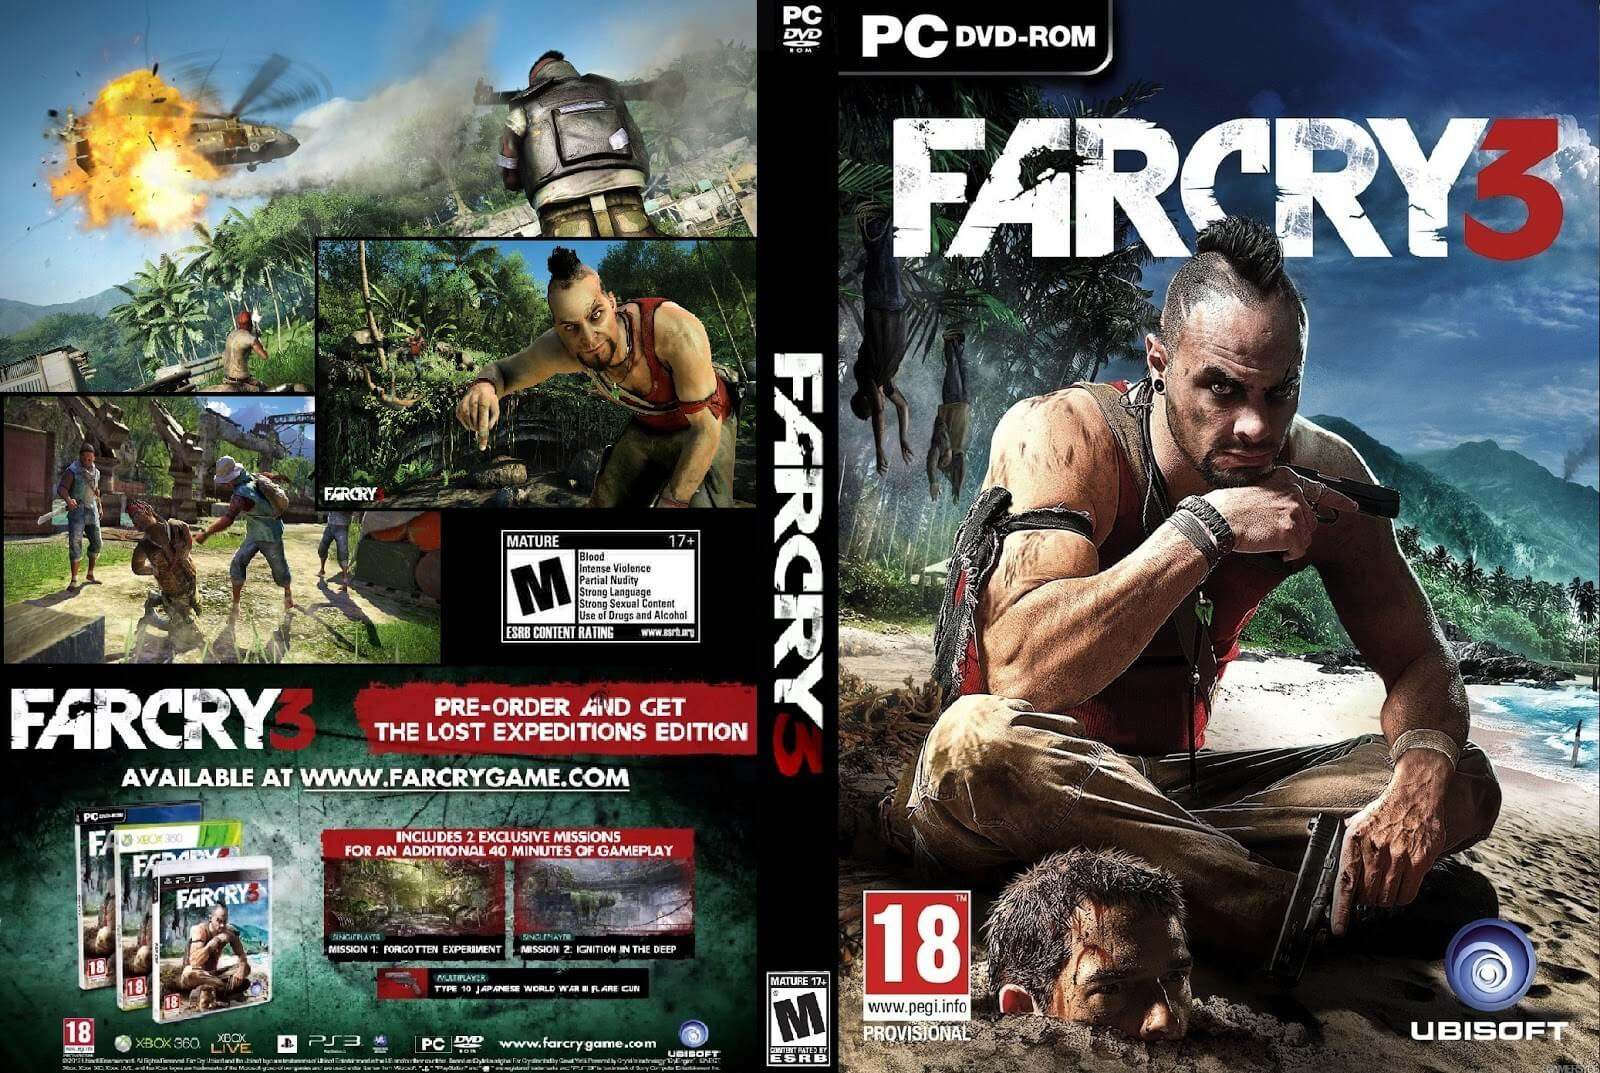 Far Cry 3 Pc Game Free Download Full Version Iso Setup Compressed